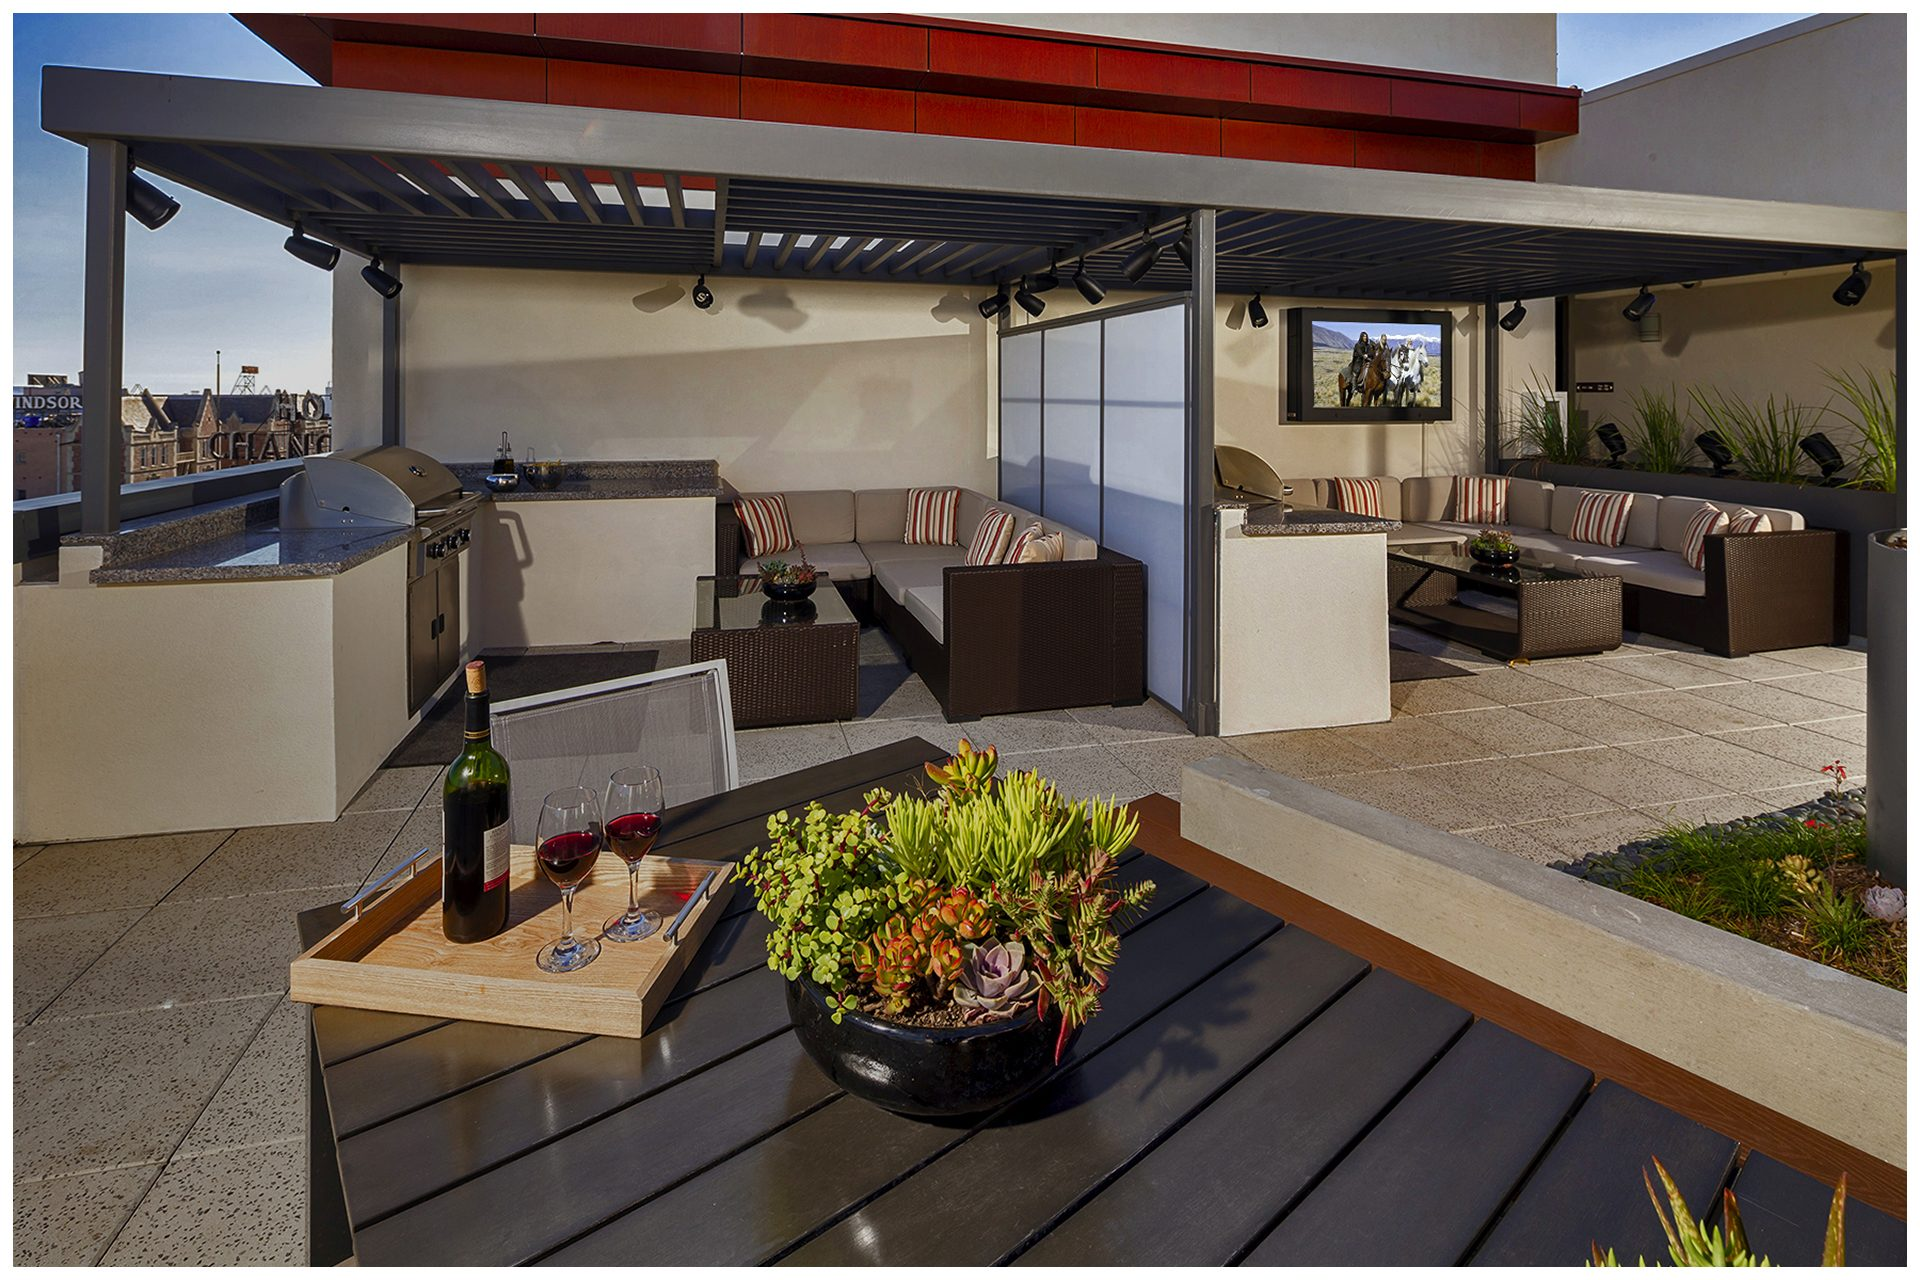 ROOFTOP/SKY DECK PROVISIONS Roof-top Audio & TV & WiFi; AV provisions controlled from leasing office.